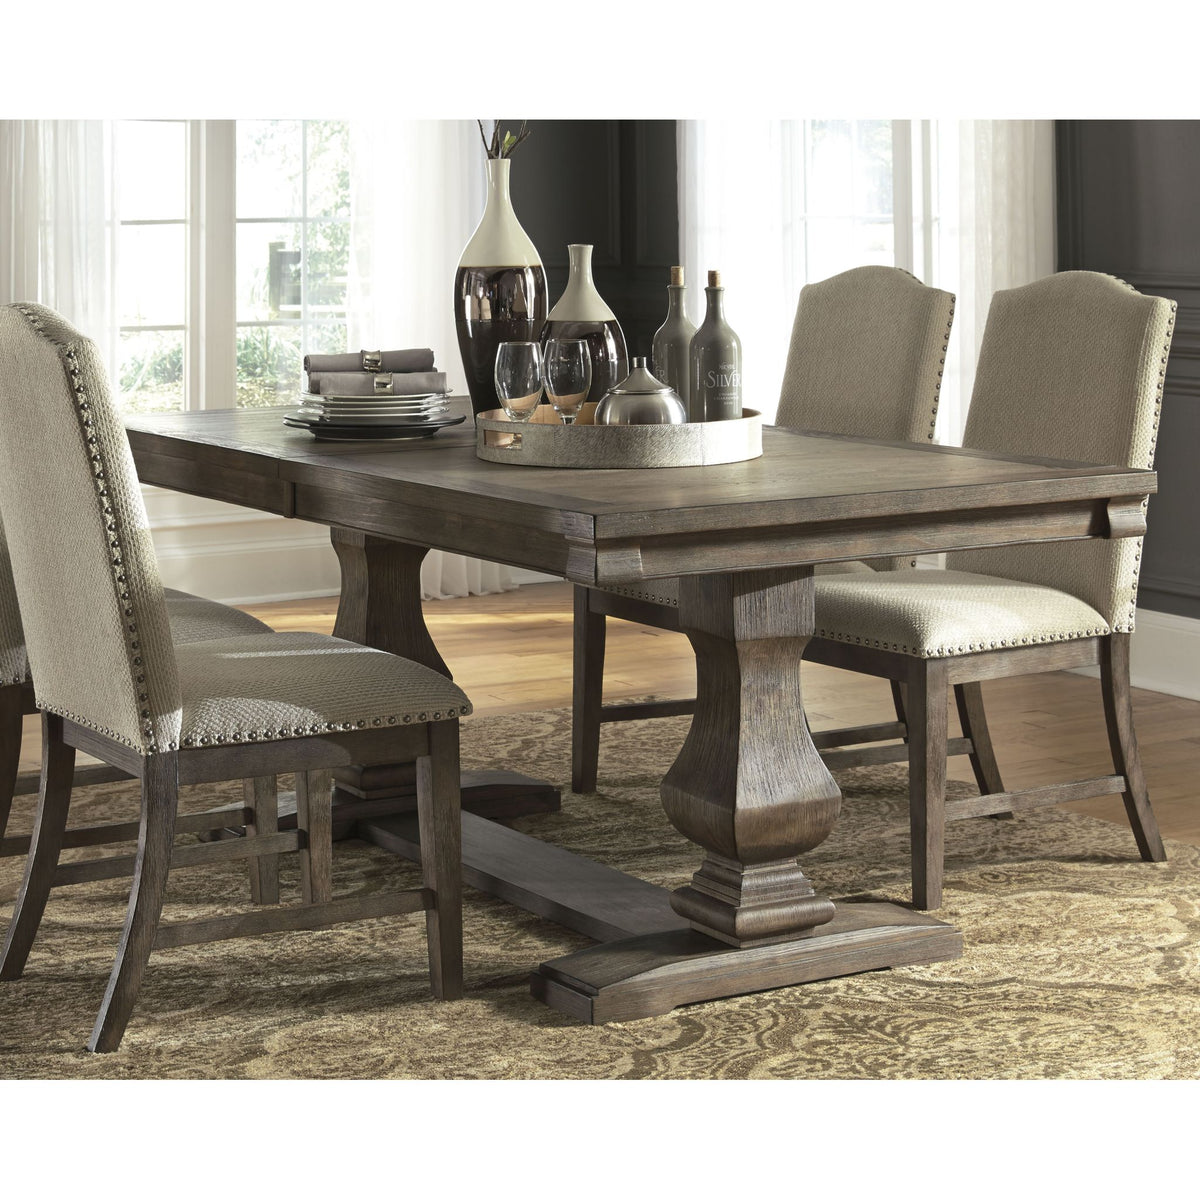 Johnelle Exclusive Extension Dining Table Ashley Homestore Canada